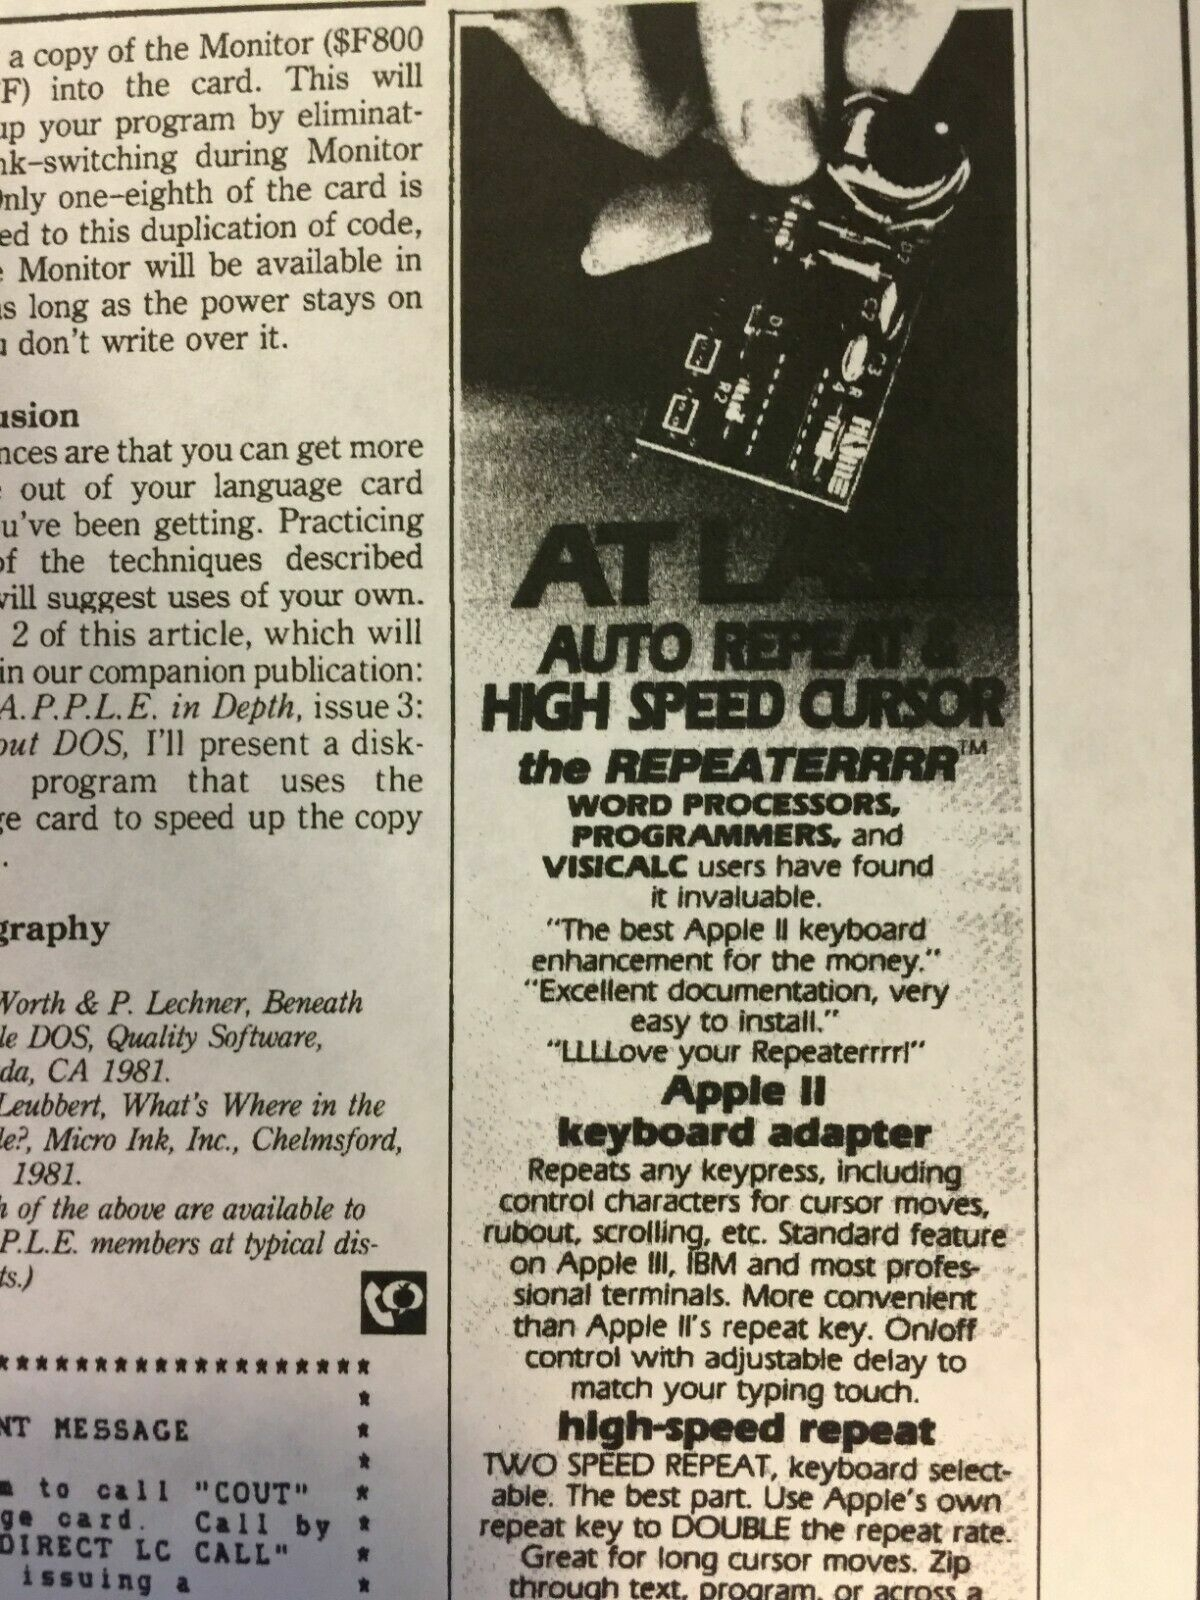 First half of magazine ad for REPEATERRRR